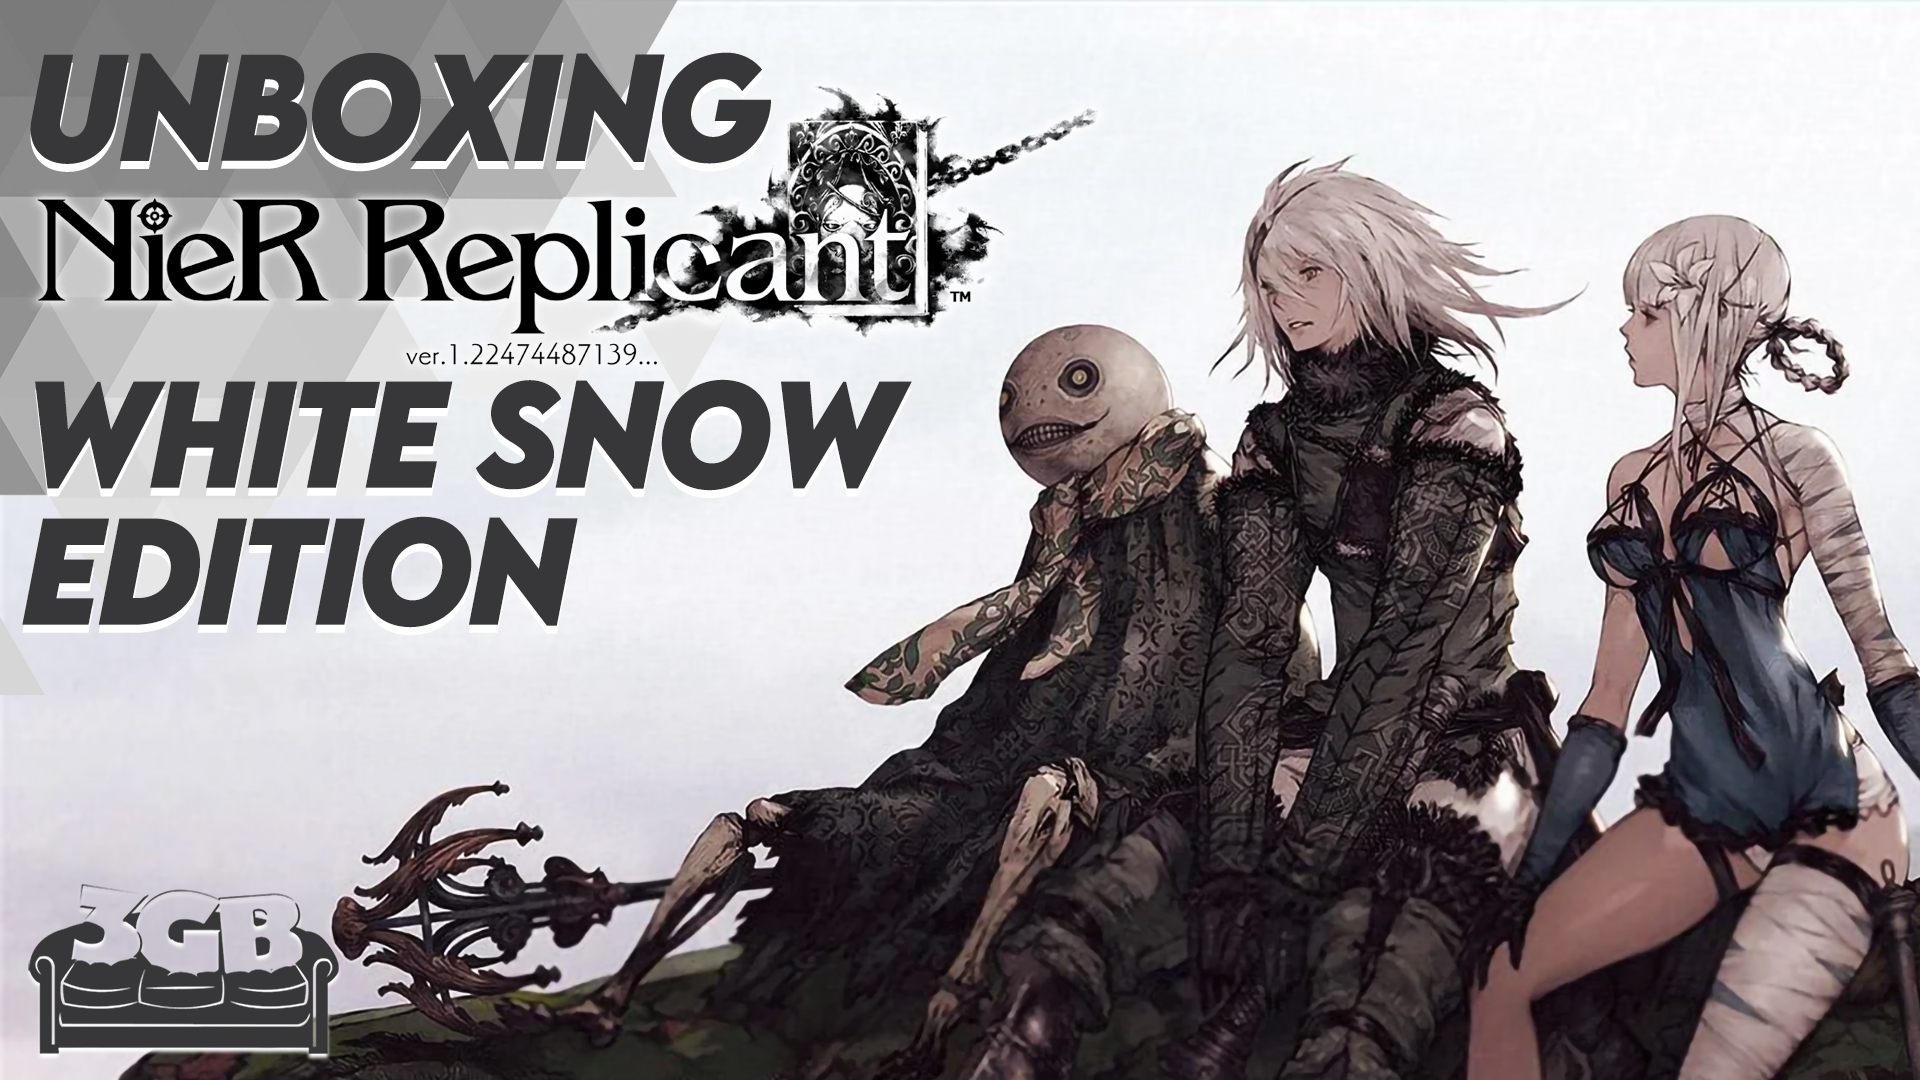 Unboxing NieR Replicant: White Snow Edition